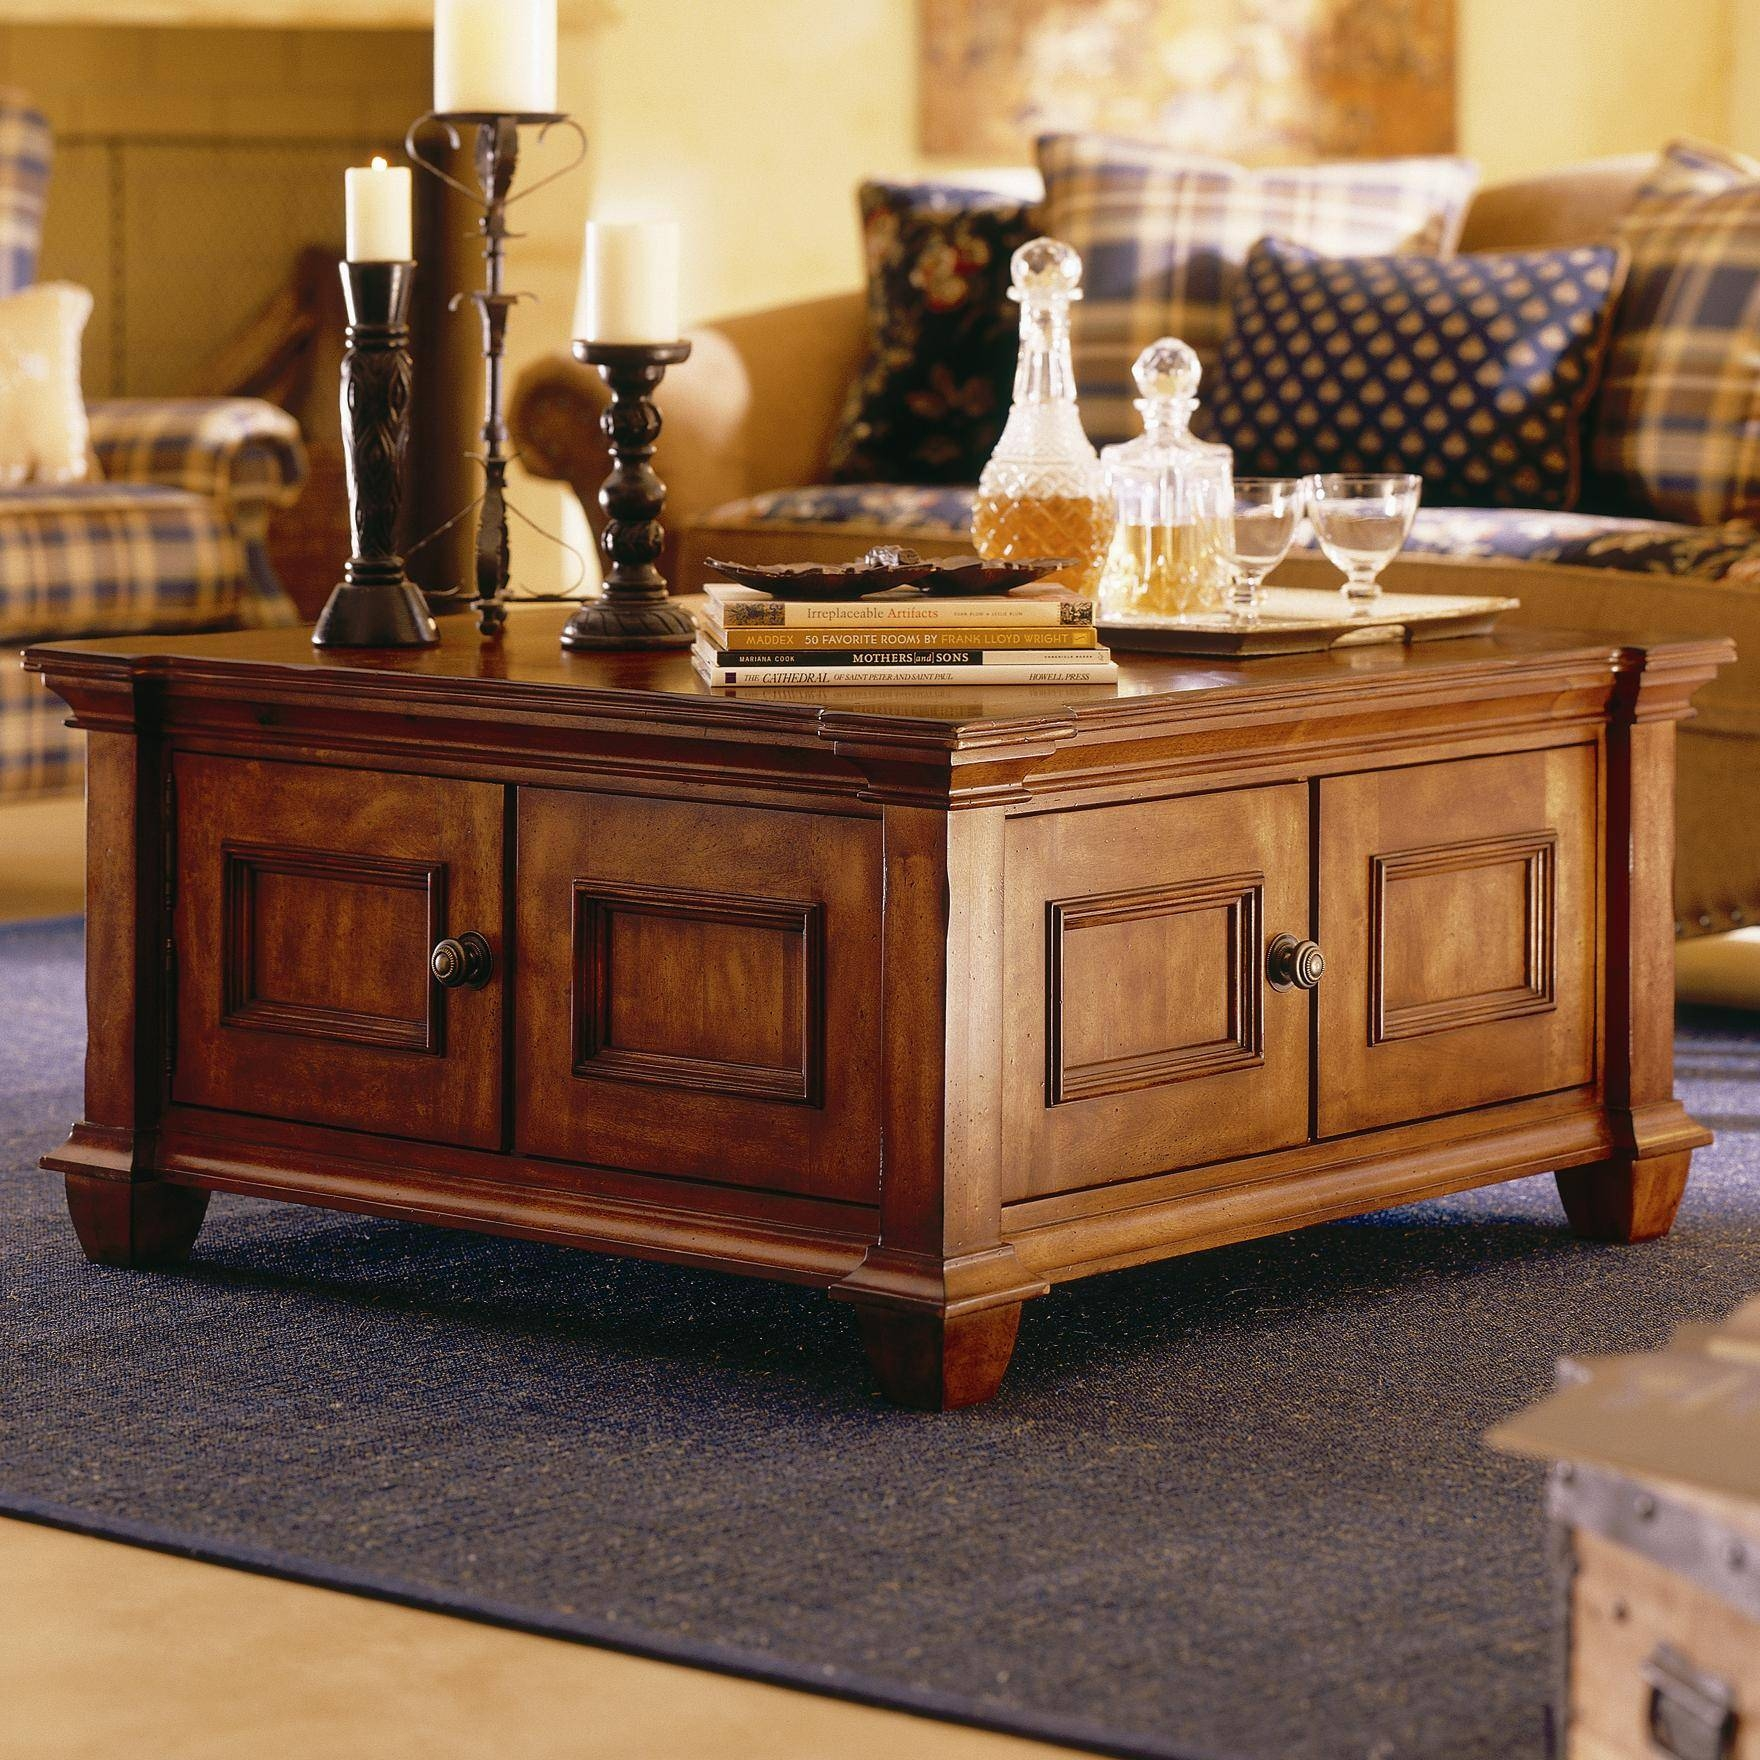 Large Square Coffee Table With Storage pertaining to Large Coffee Table With Storage (Image 10 of 12)